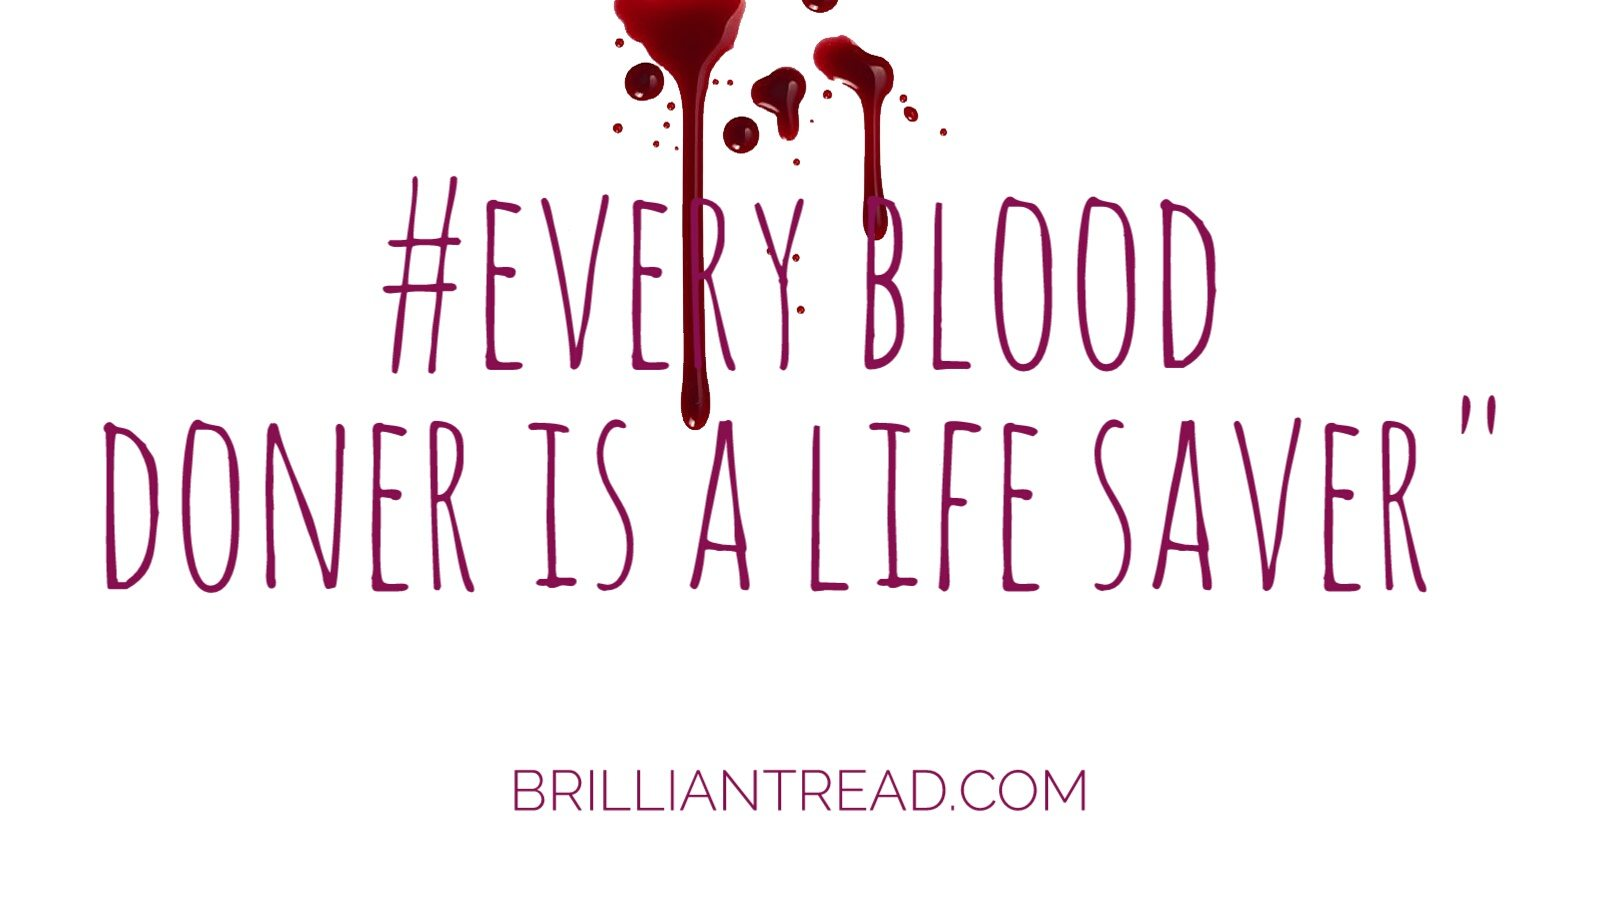 Donation Quotes Top 20 Blood Donation Quotes And Slogans  Brilliant Read